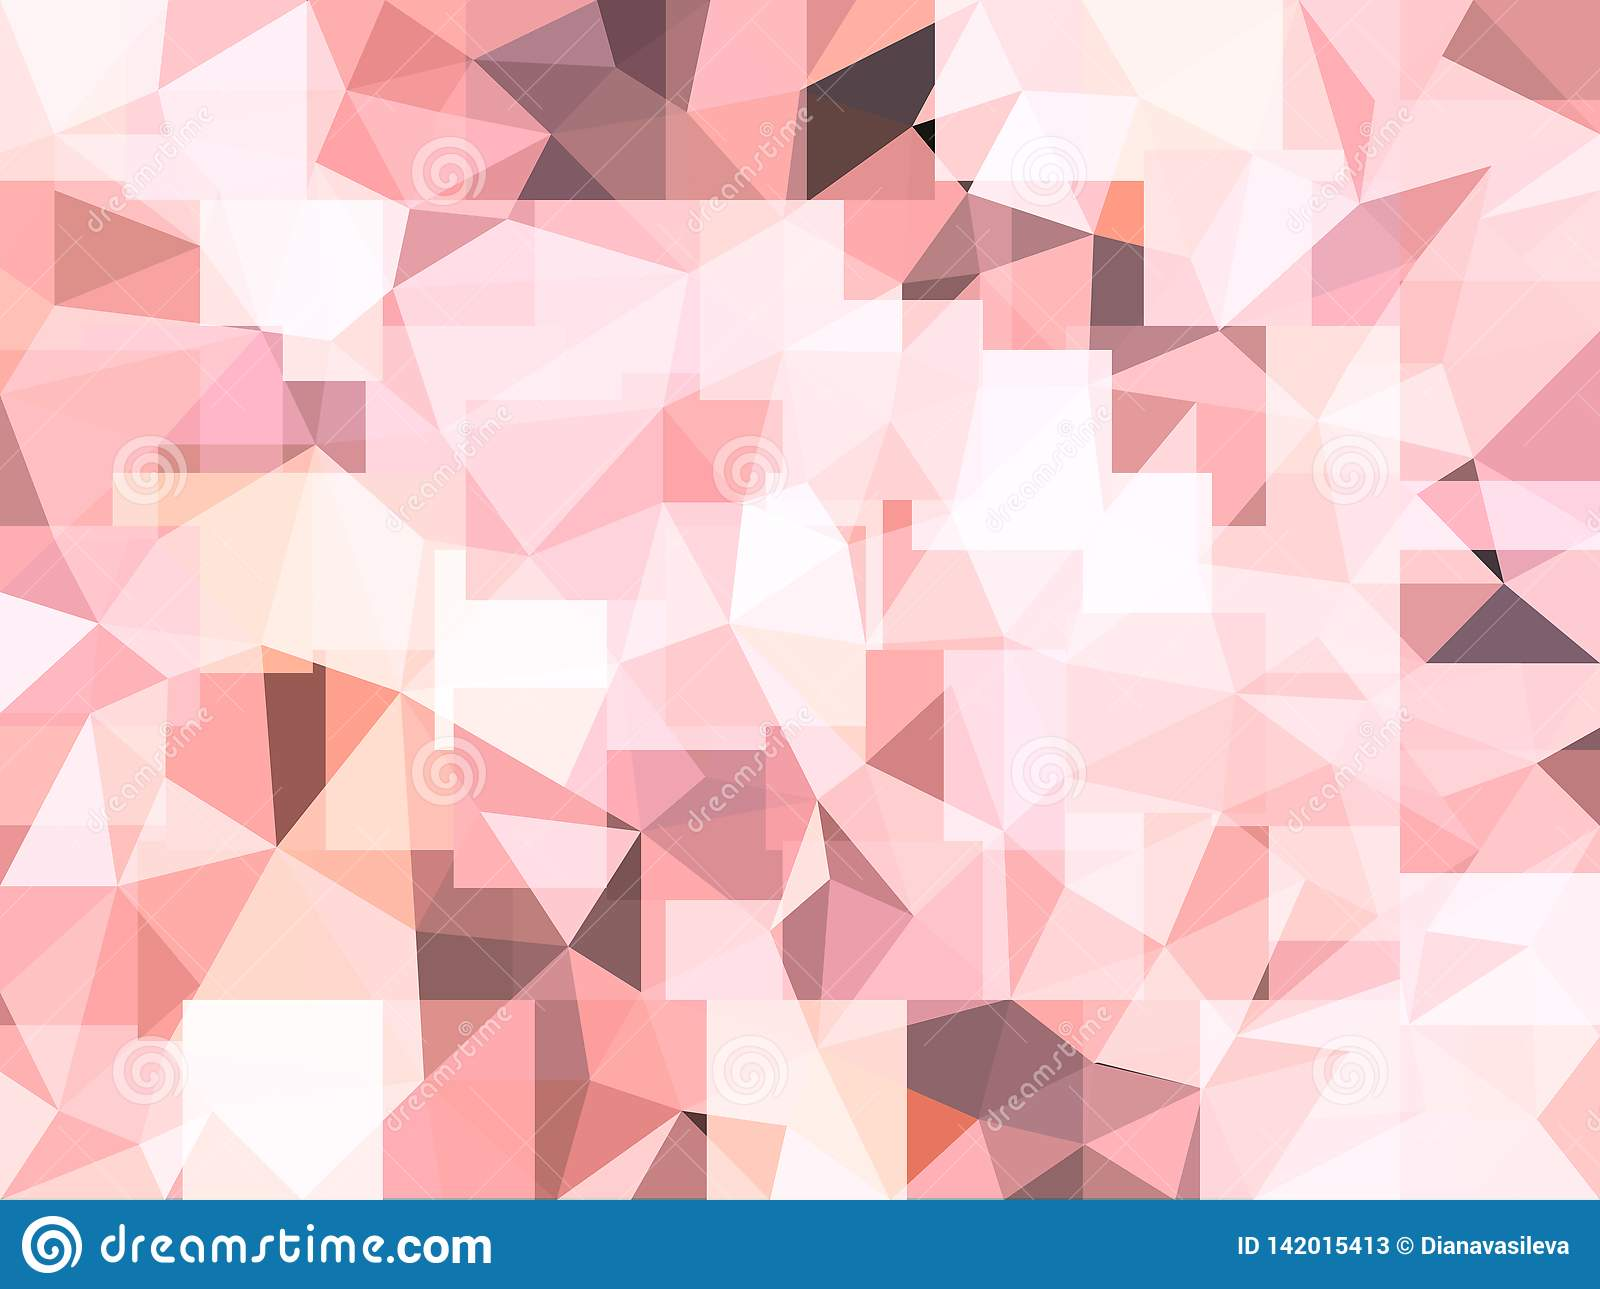 vector abstract pastel pink background shapes triangles vibrant wallpaper low poly style illustration soft fond looks 142015413